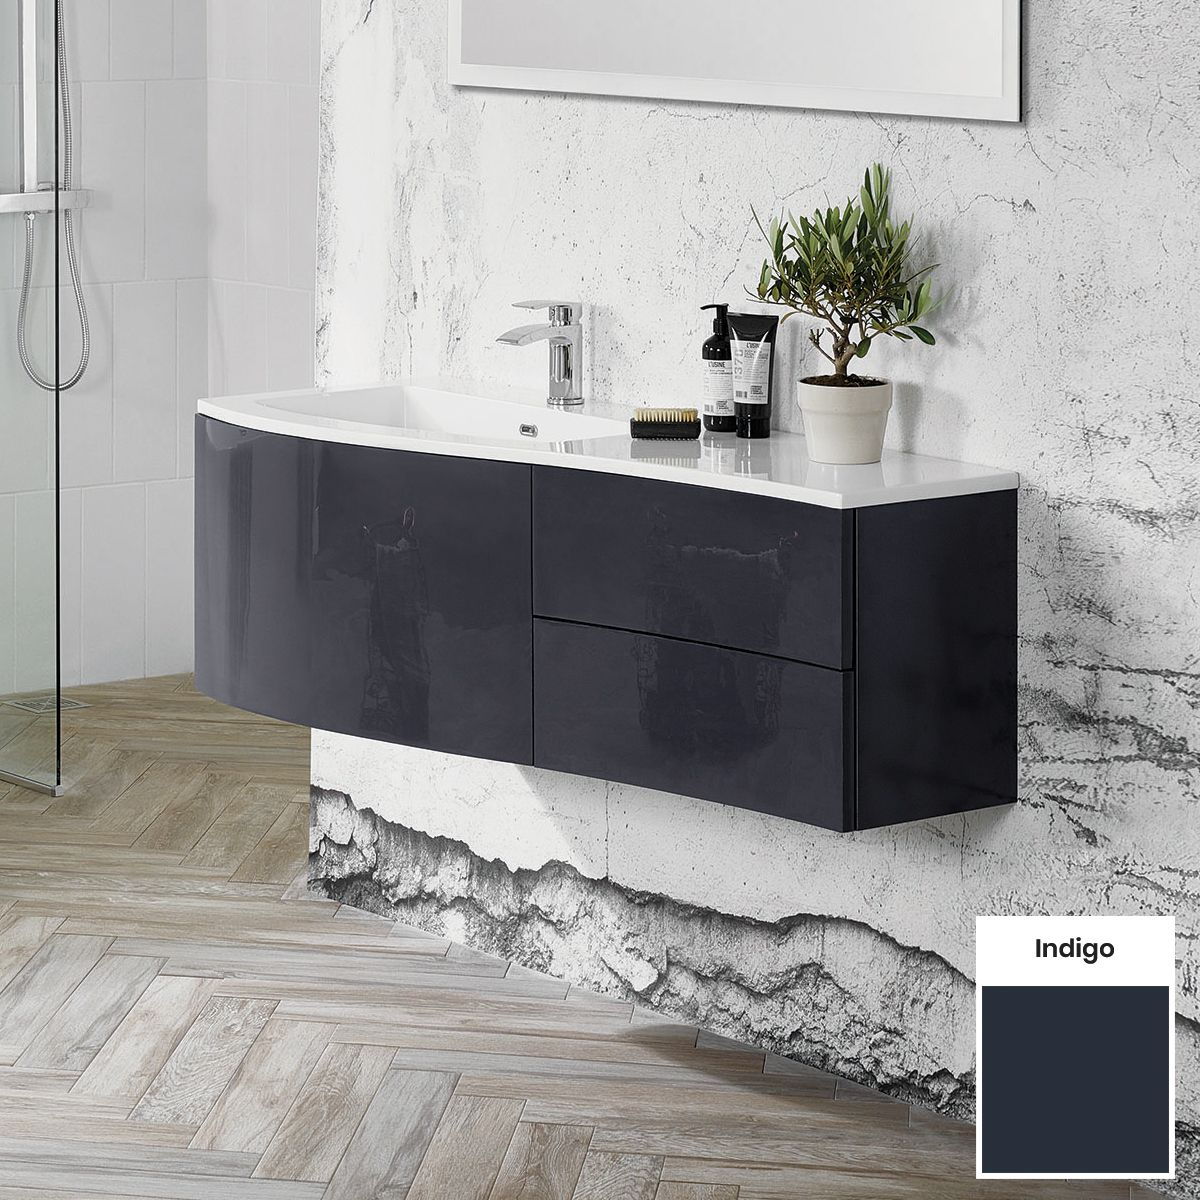 Elation Kiyo Indigo Vanity Unit 1200mm Left Handed